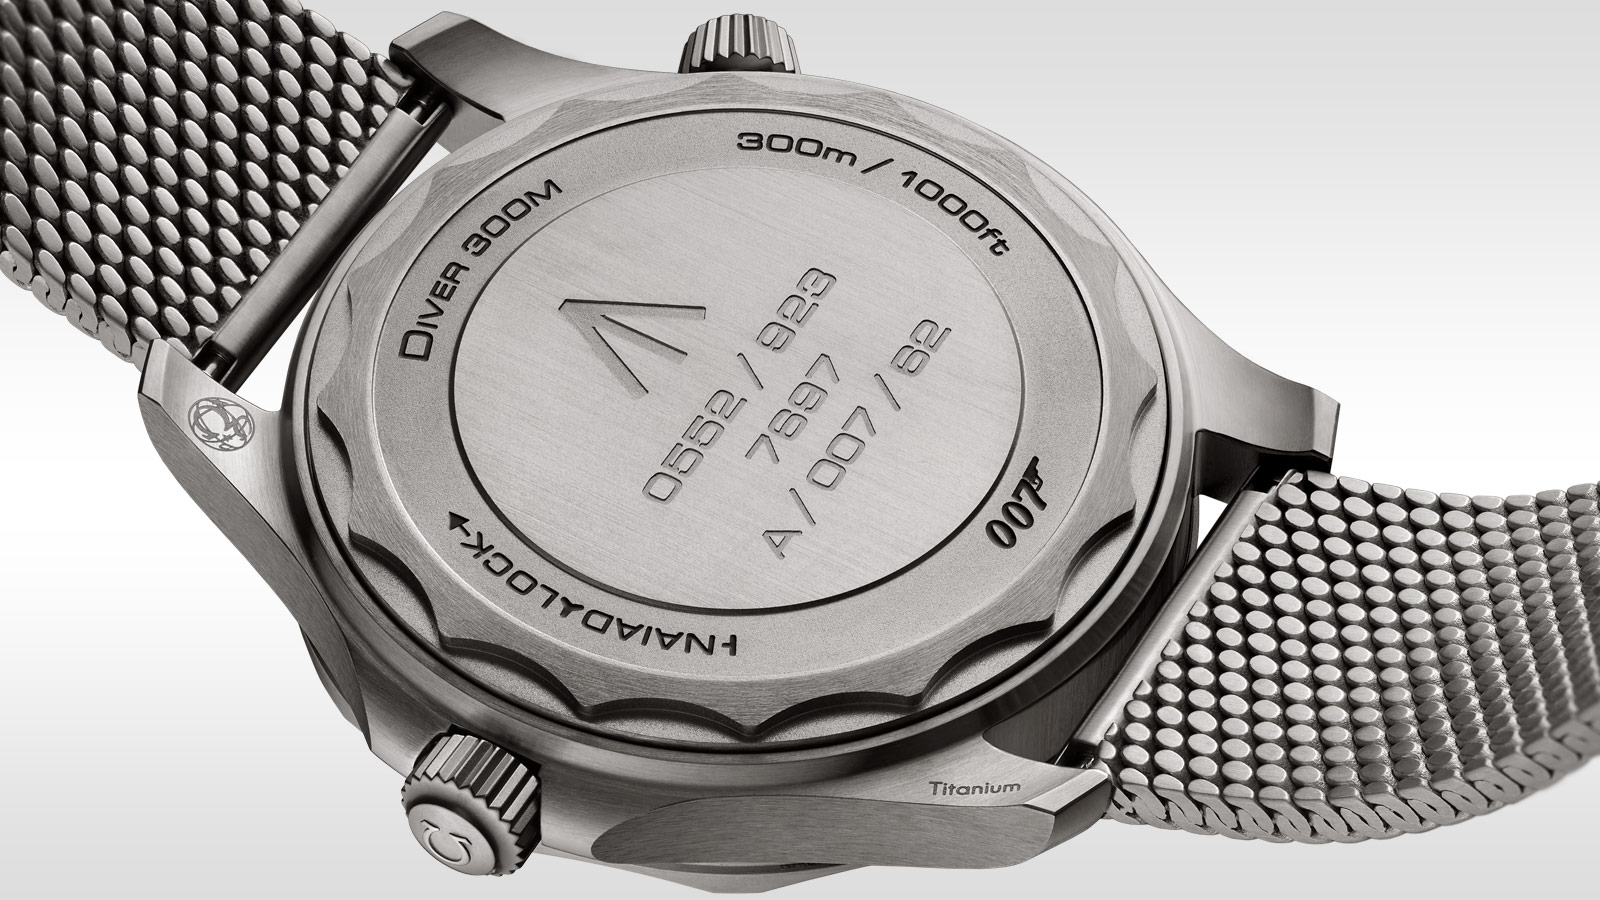 Seamaster Diver 300 M Diver 300M Omega Co‑Axial Master Chronometer 42 mm - 210.90.42.20.01.001 - Anzeigen 3